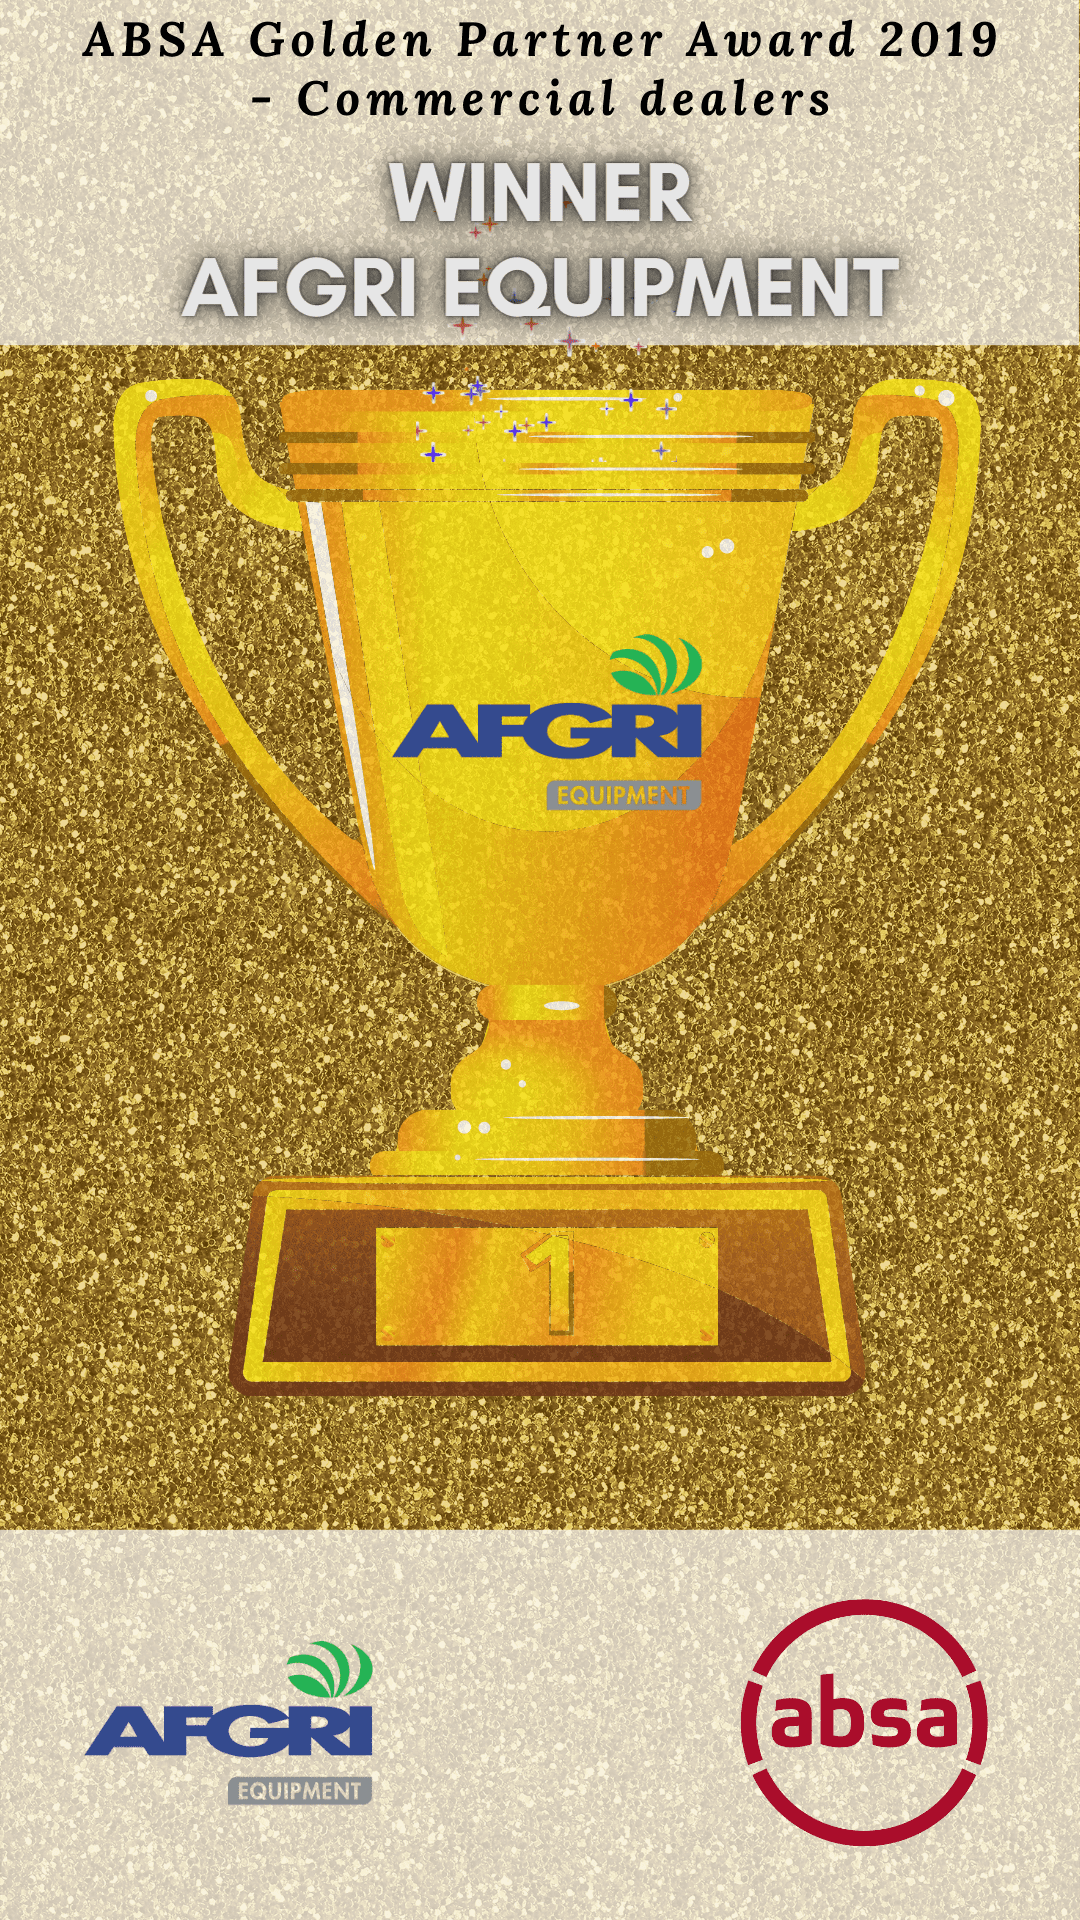 Copy of ABSA Golden Partner Award 2019 (1)